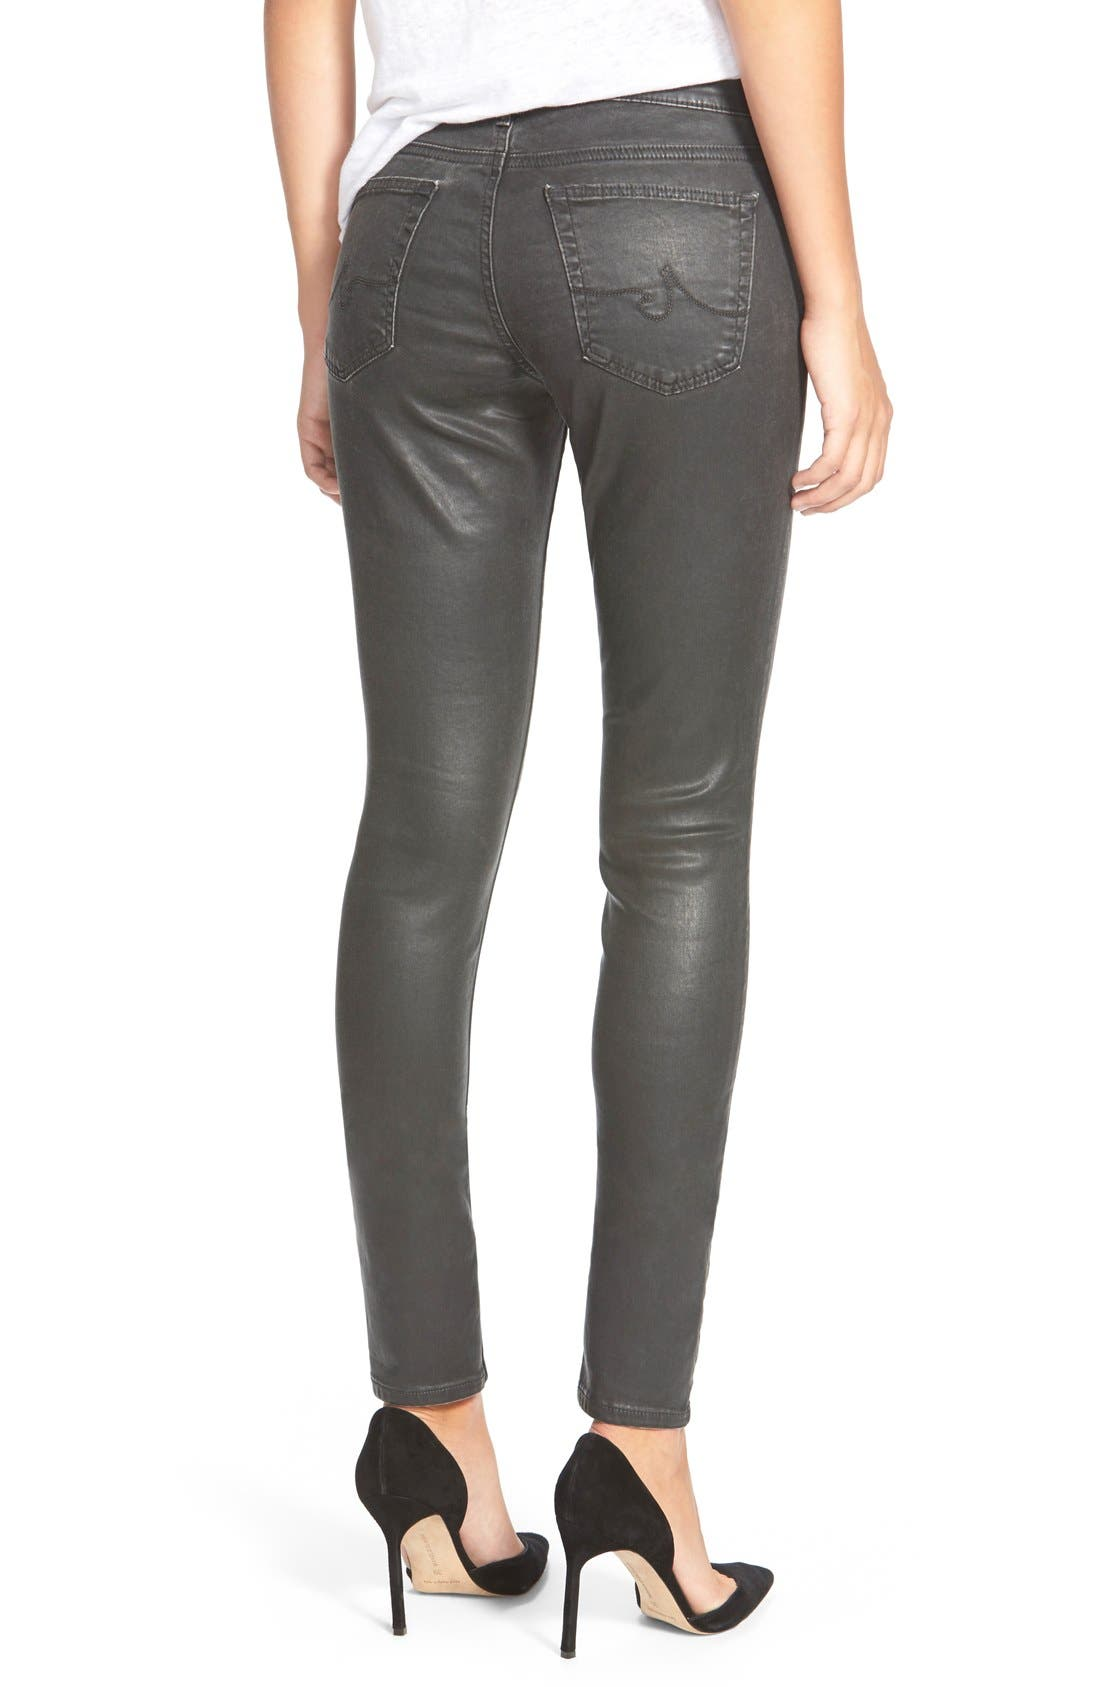 'The Legging' Coated Ankle Jeans,                             Alternate thumbnail 2, color,                             Vintage Leatherette Black